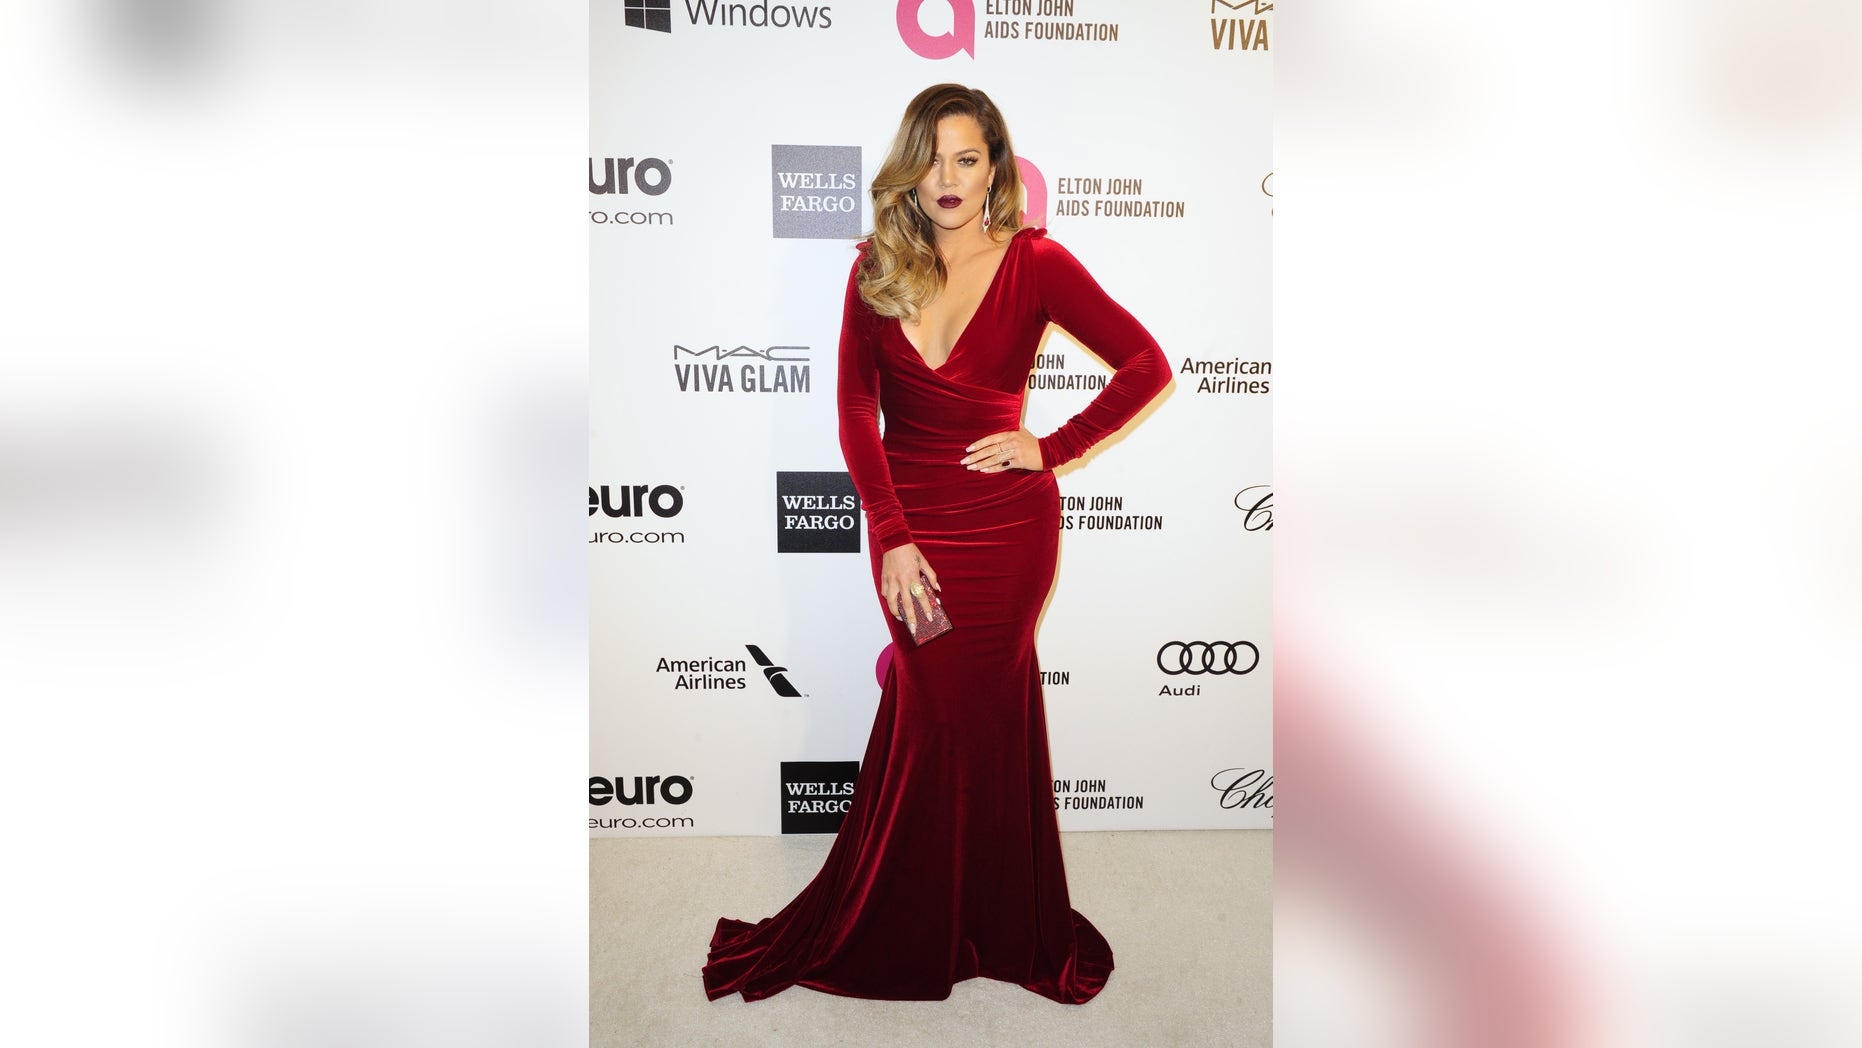 March 2, 2014. Television personality Khloe Kardashian arrives at the 2014 Elton John AIDS Foundation Oscar Party in West Hollywood, California.